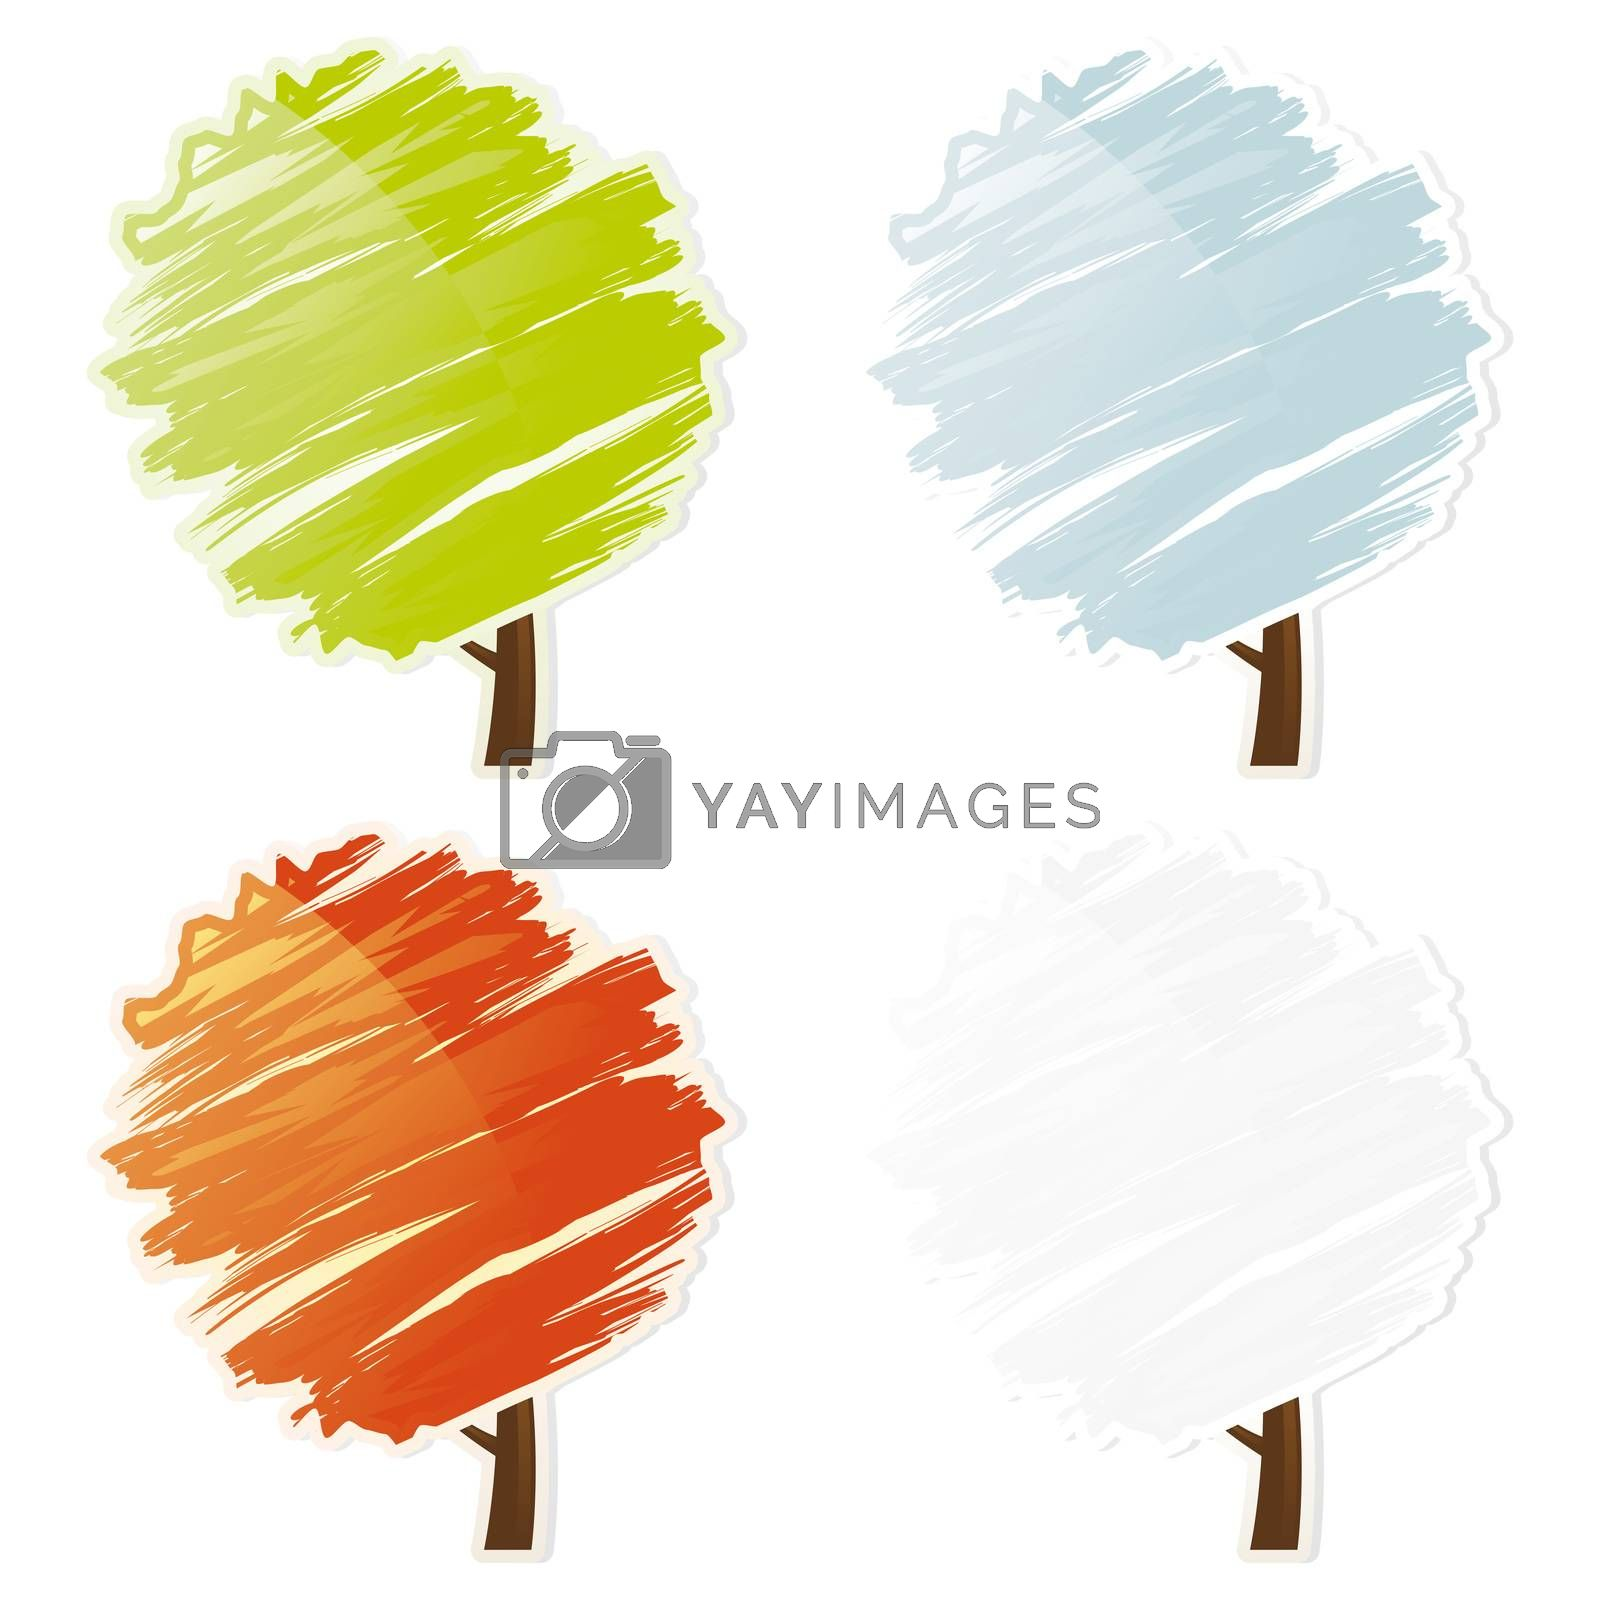 Four color abstract tree icon set by WaD